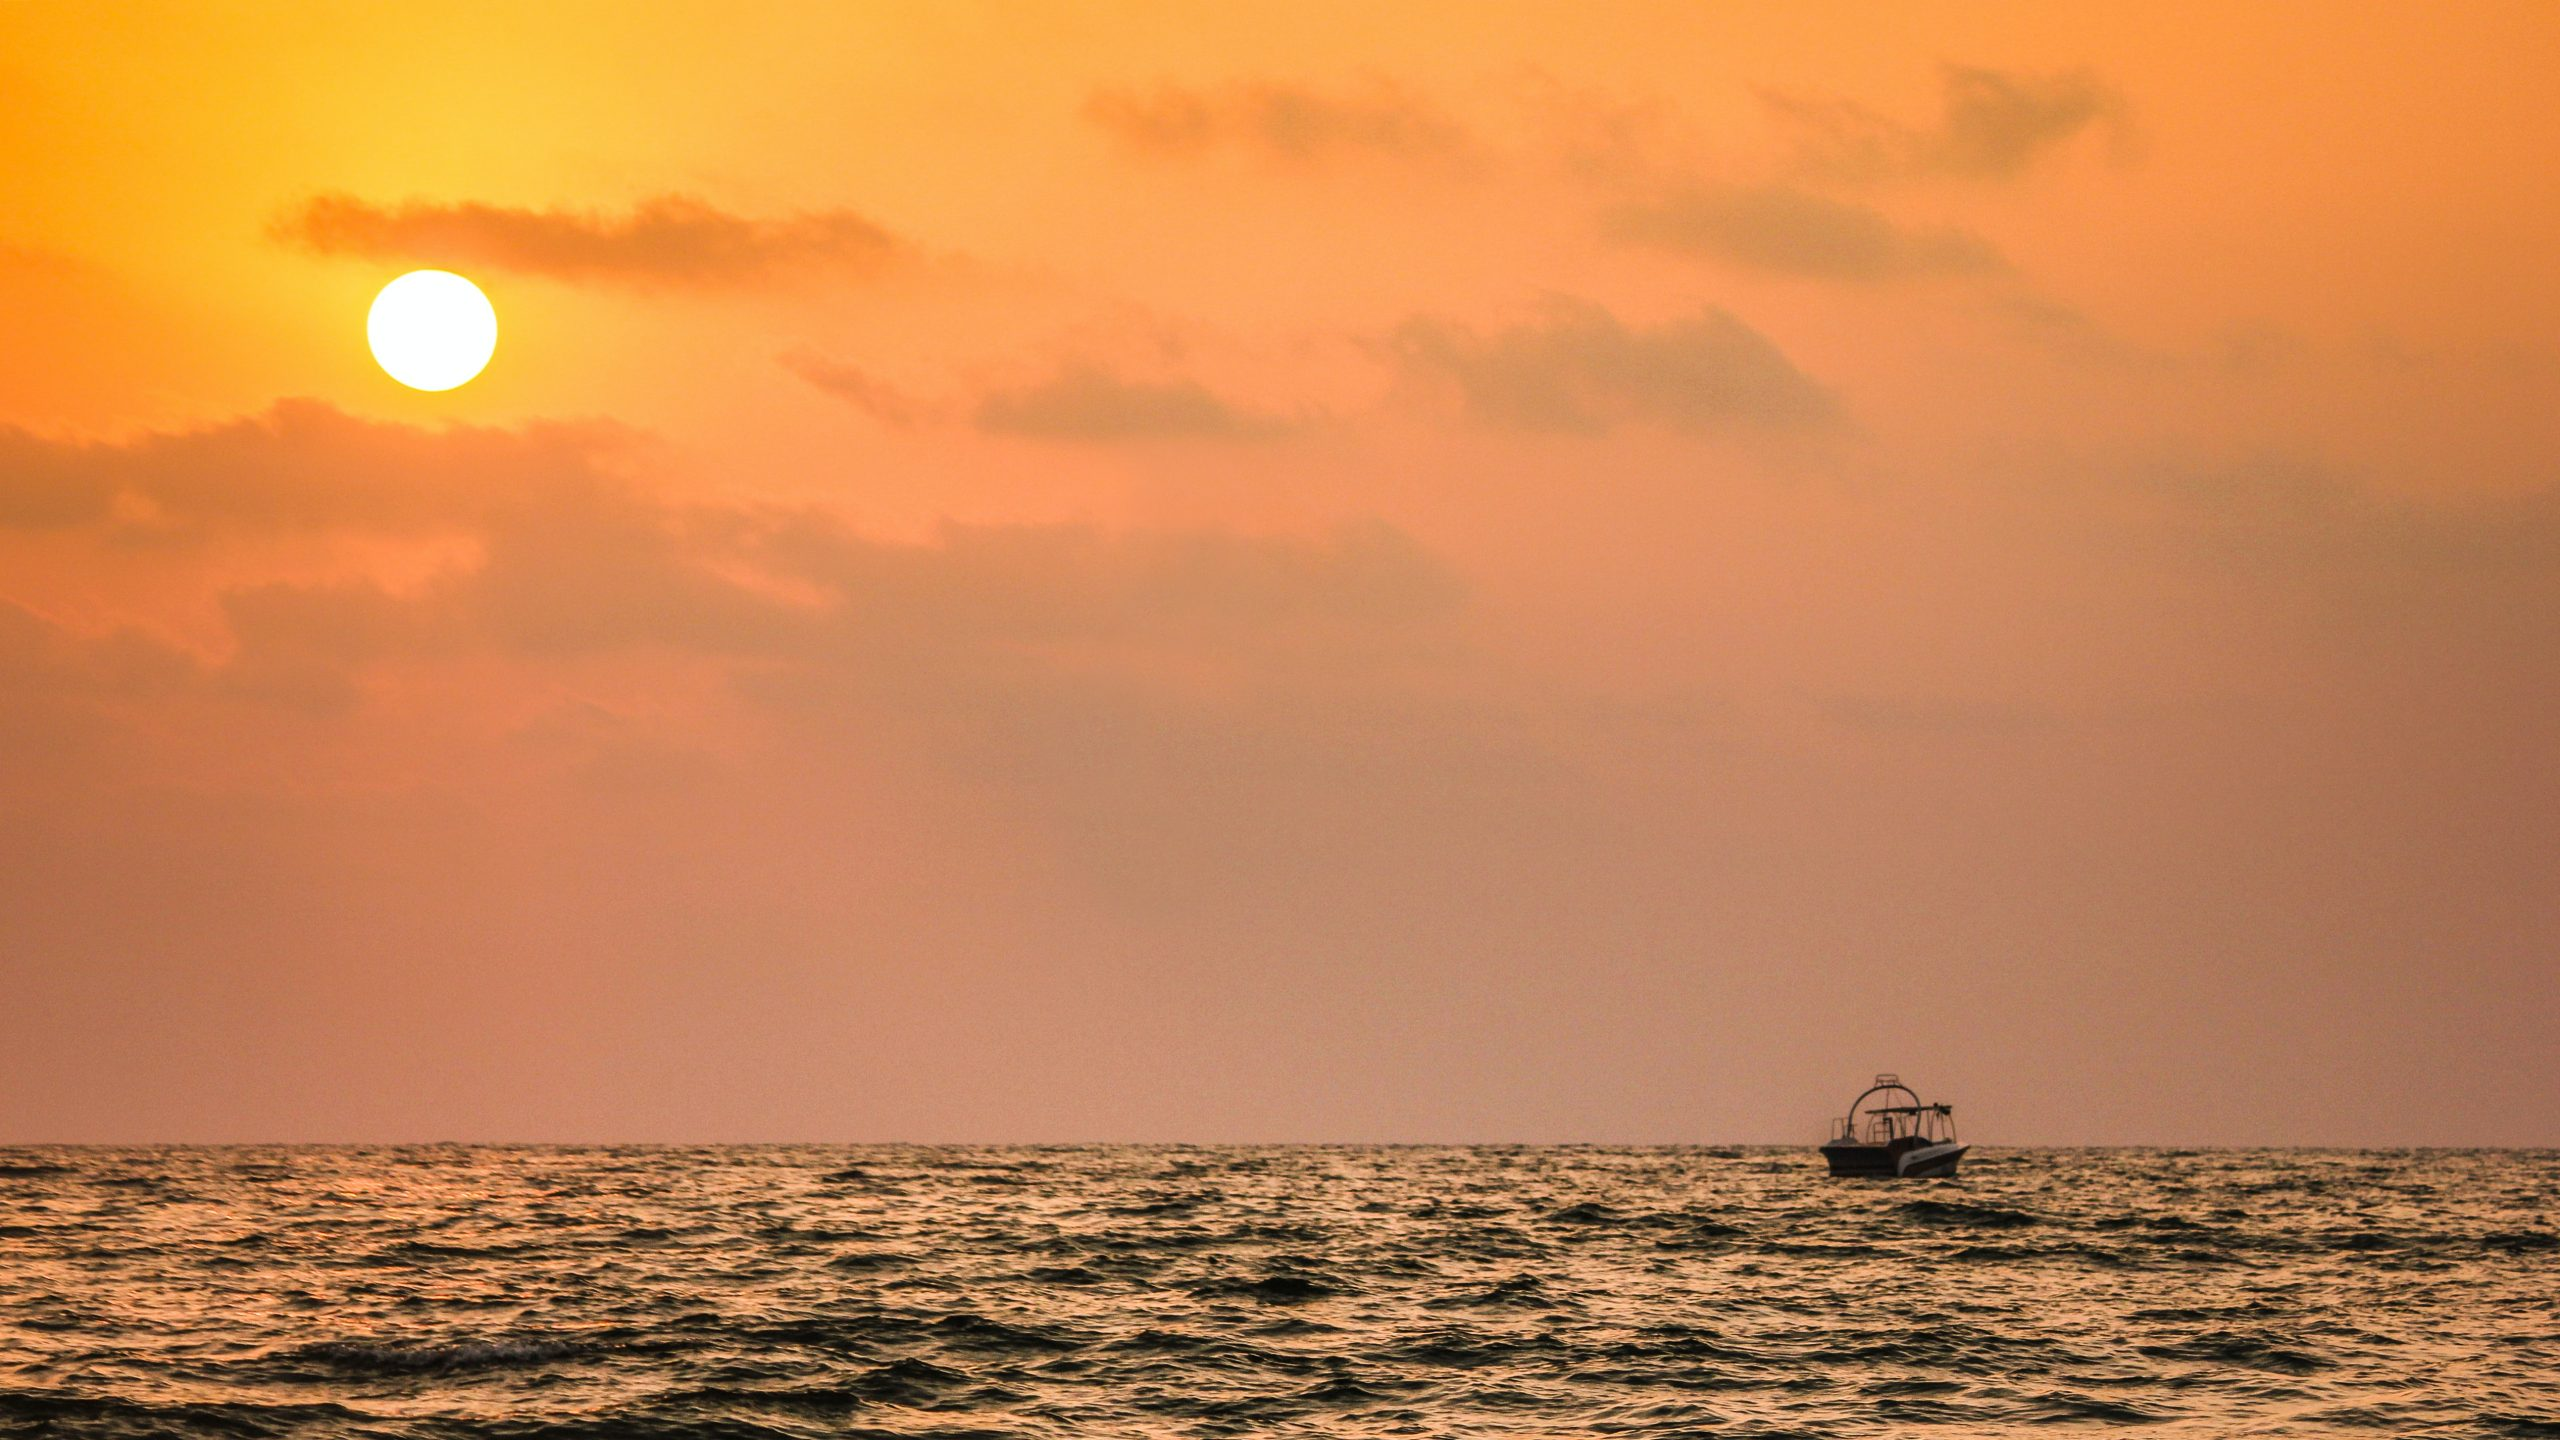 Life of Pi makes you suspend you disbelief - lonely boat in the ocean at sunset